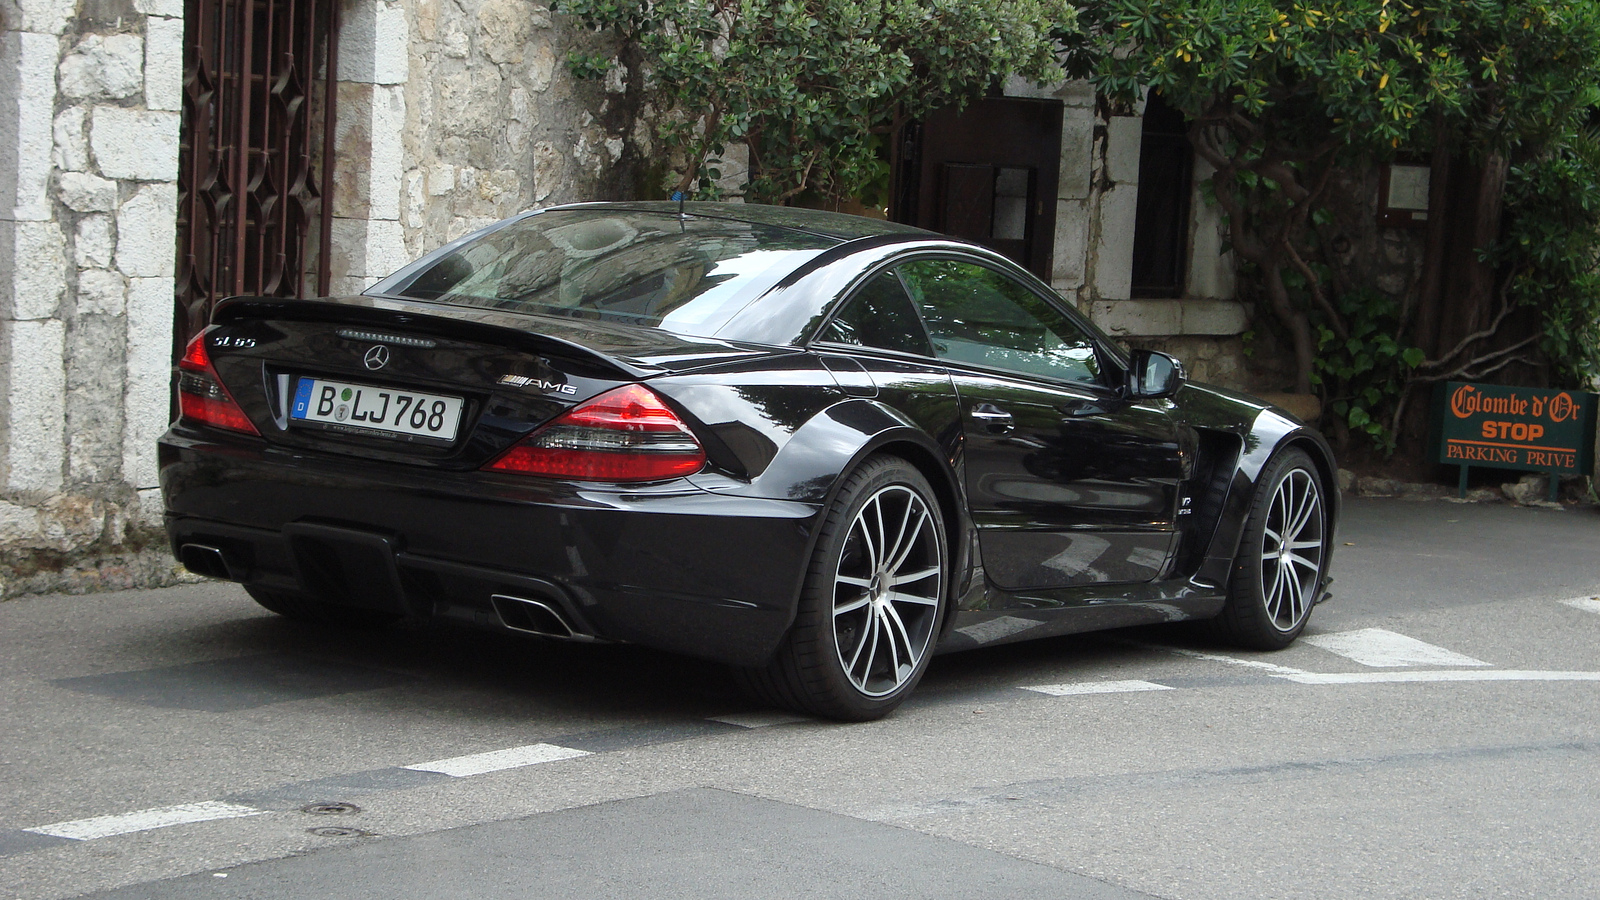 Mercedes-Benz SL 65 AMG Black Series | Flickr - Photo Sharing!